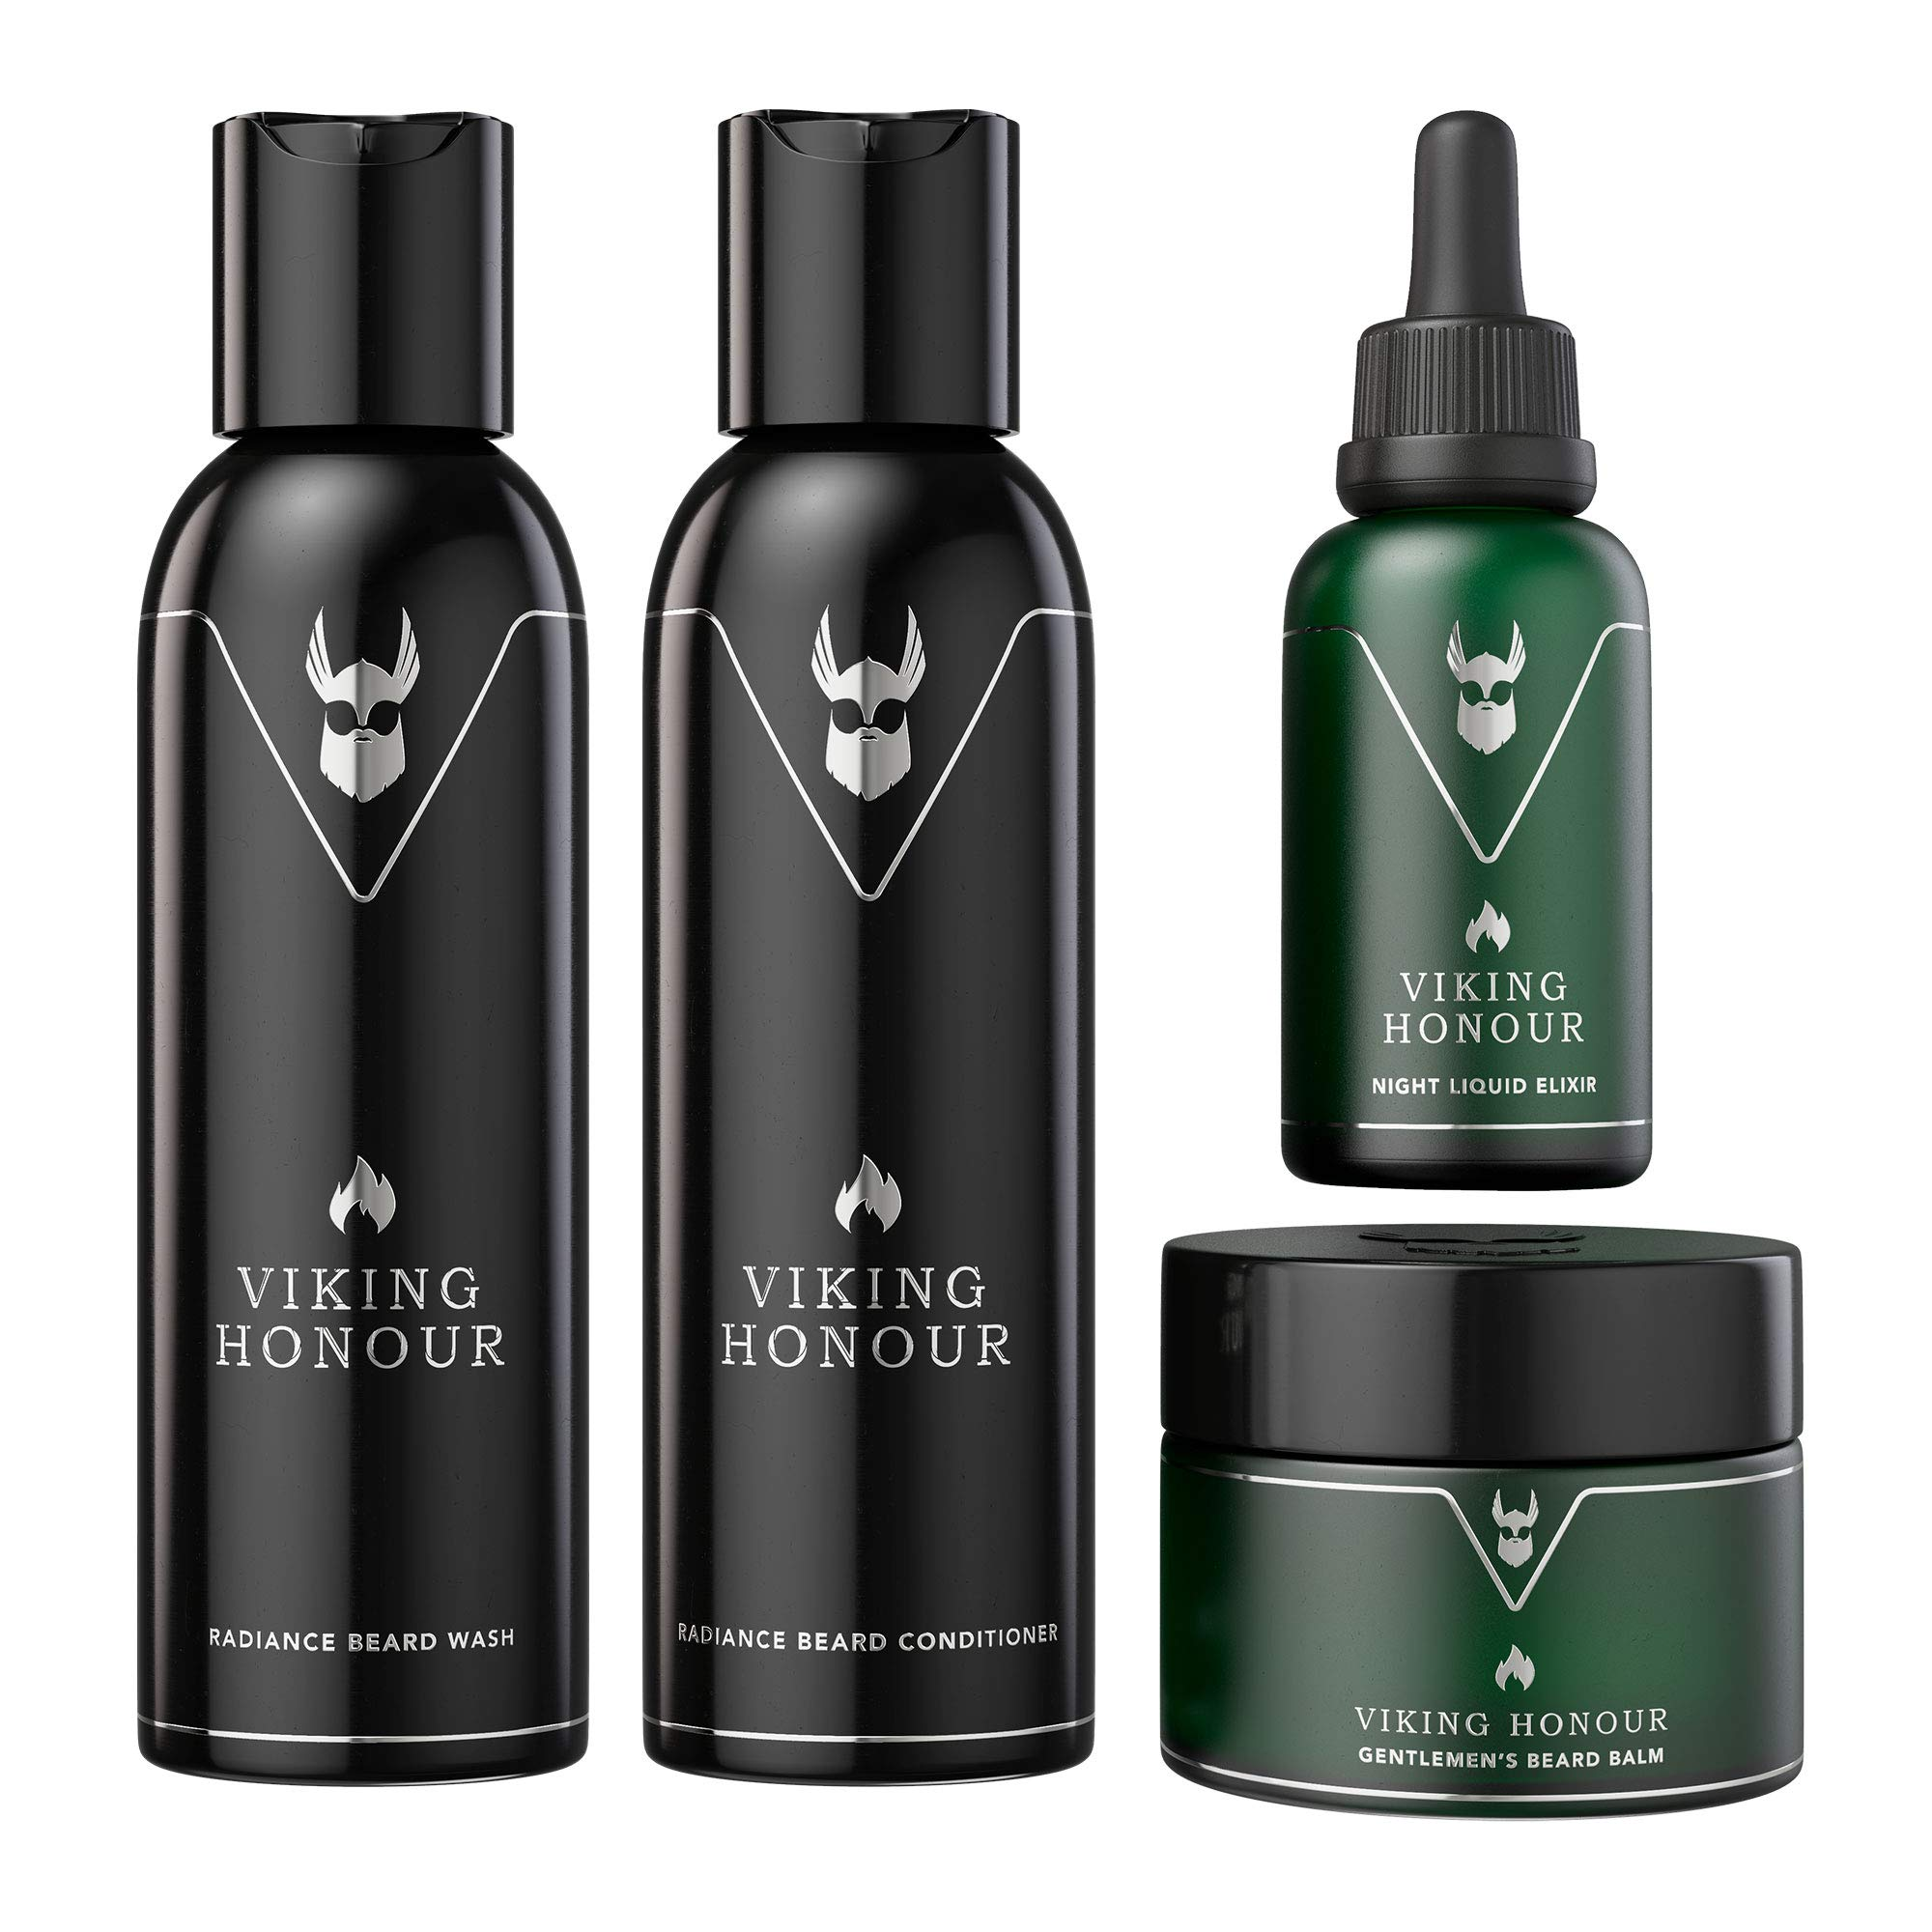 The Beard Struggle Essential Kit - Grooming Care Package for Men - Balm, Oil, Wash, Conditioner - (Silver - Viking Honour)